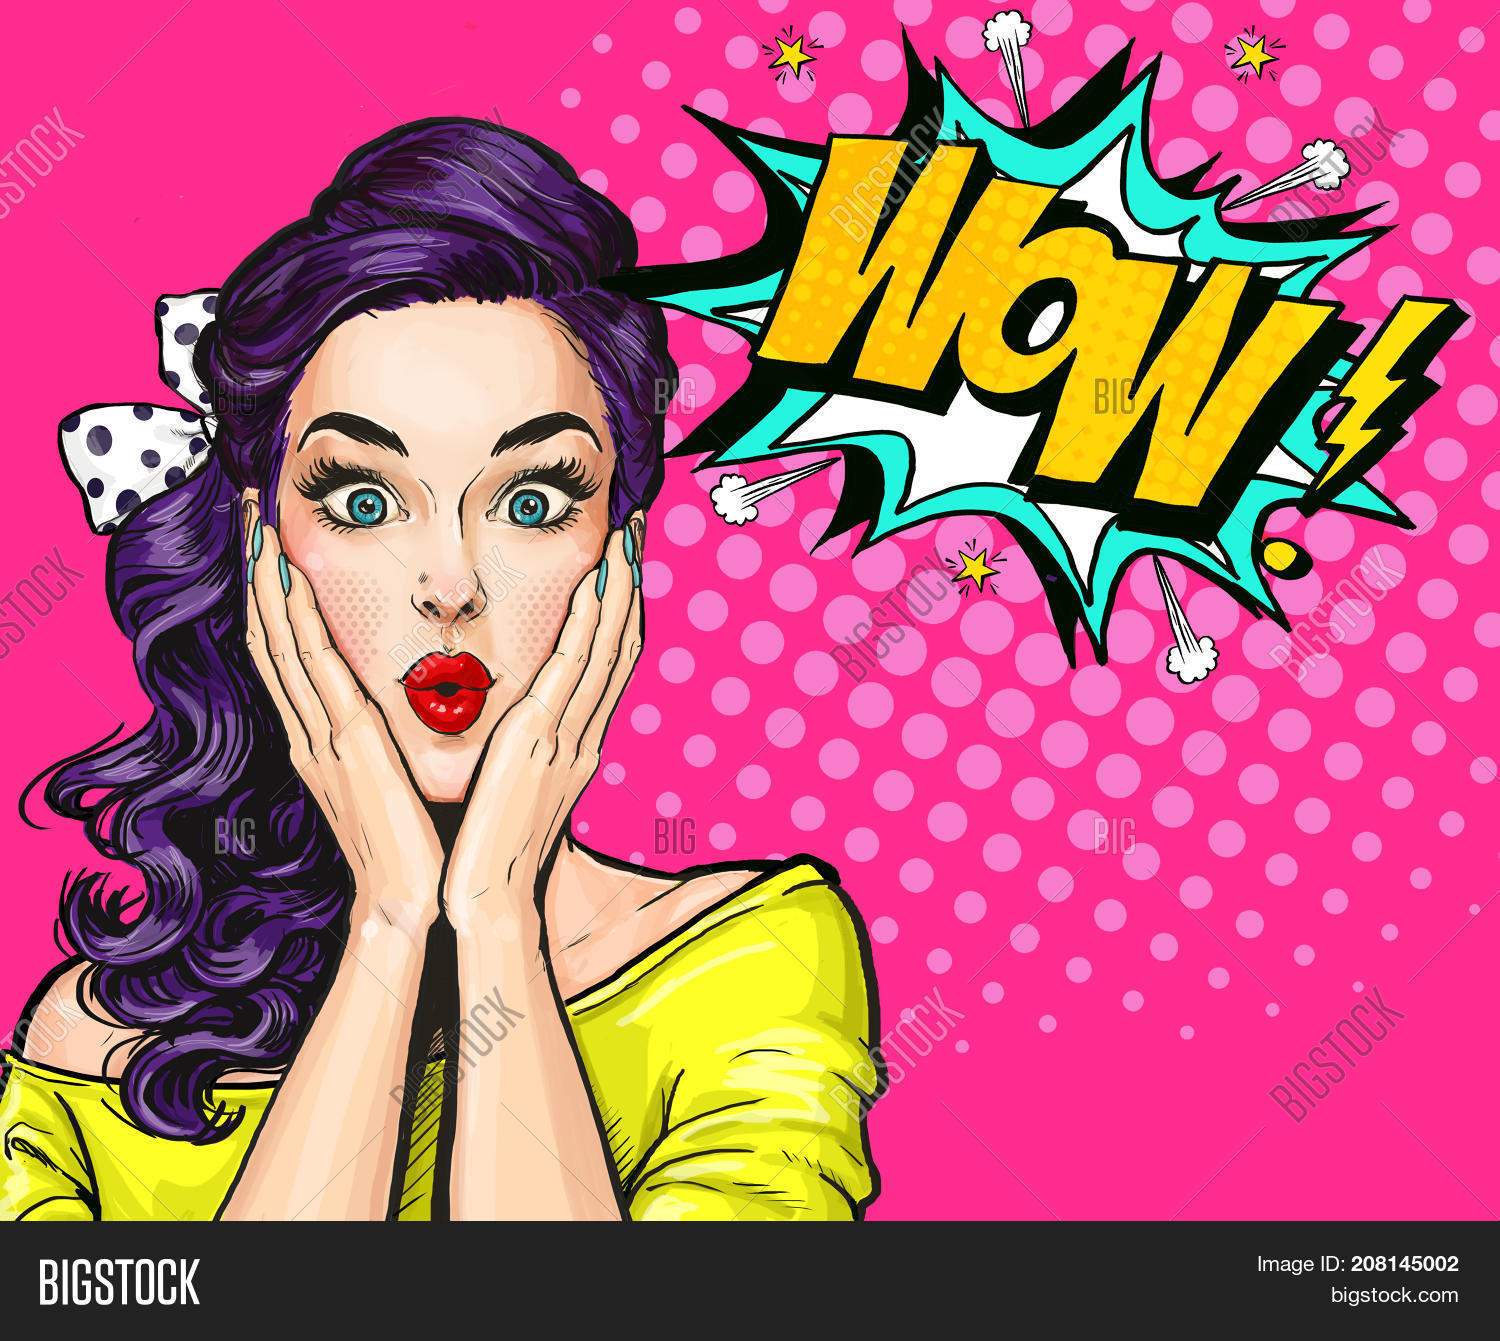 Pop art illustration surprised girl comic woman wow advertising poster pop